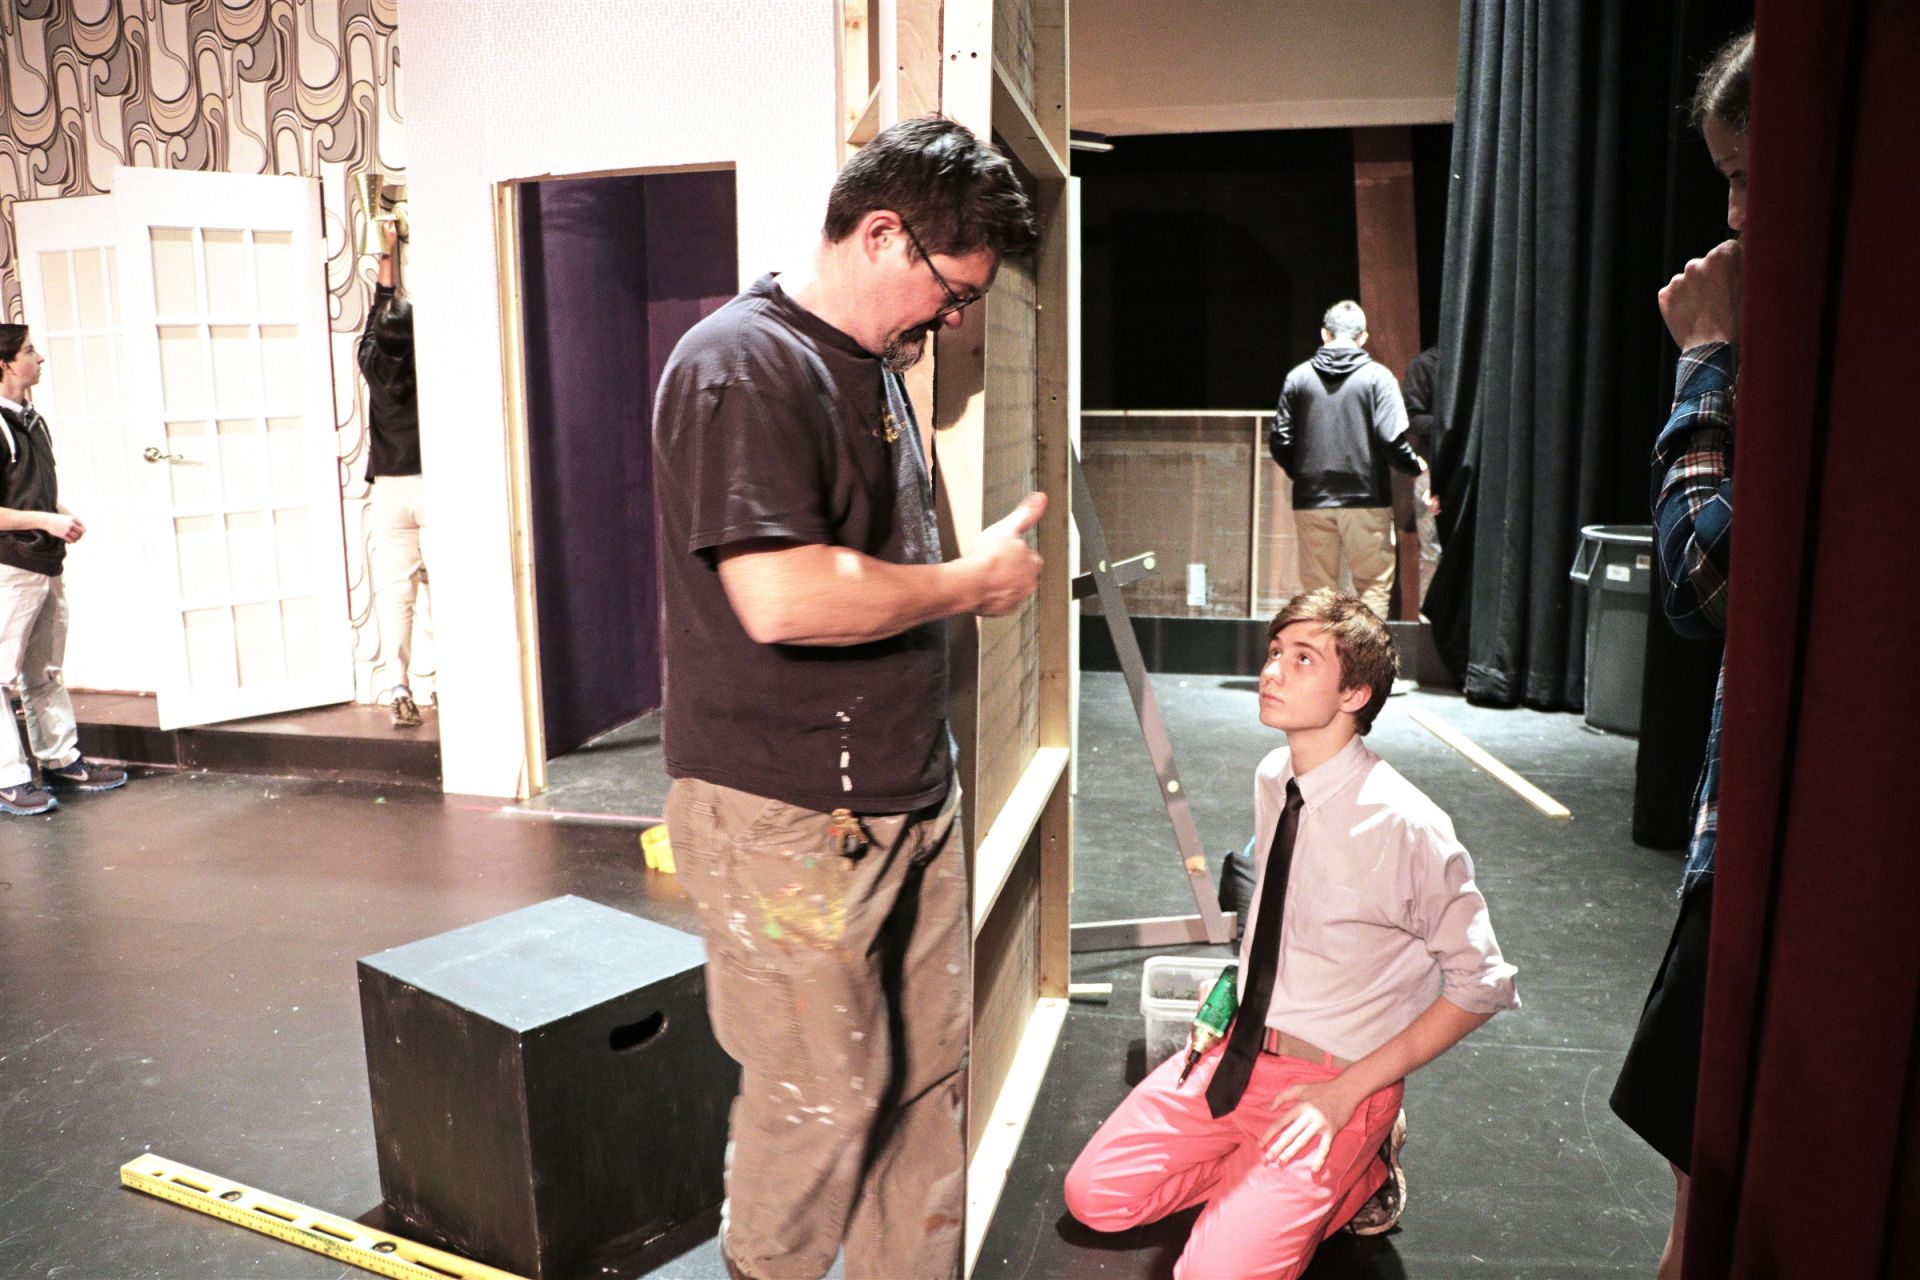 Theatre Tech Director John Conners guides Tech Crew members through their hands-on participation in building the sets